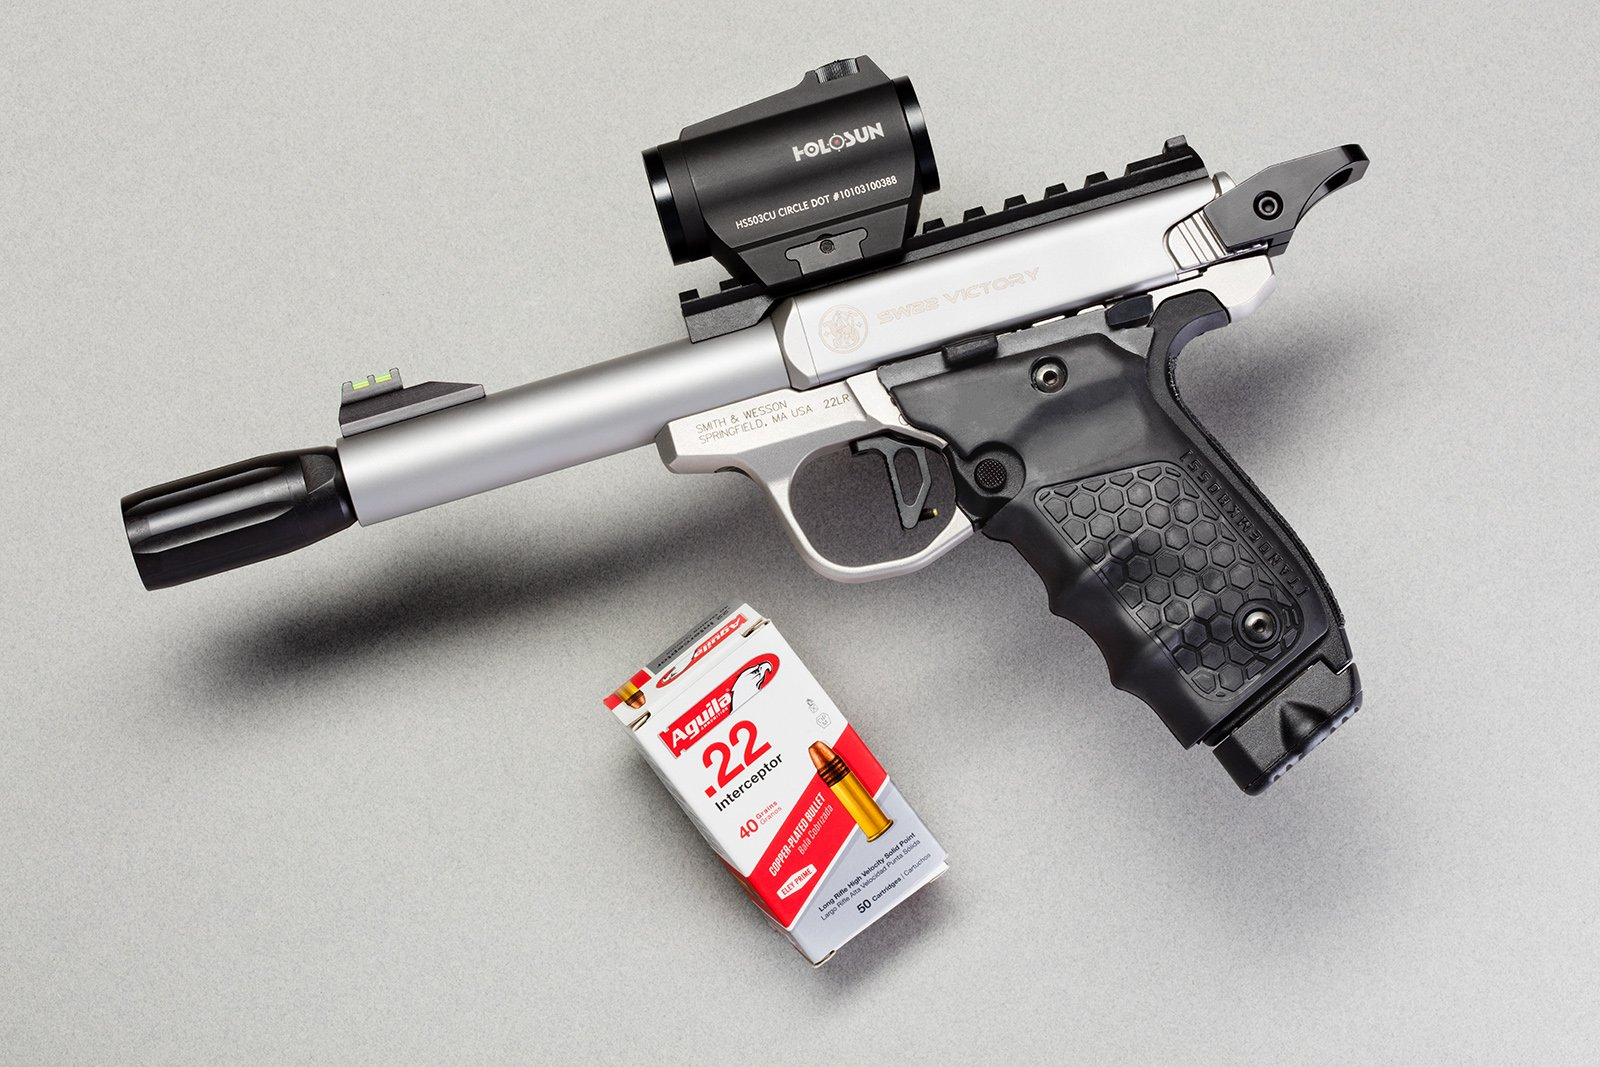 How to select the barrel for a rimfire competition pistol